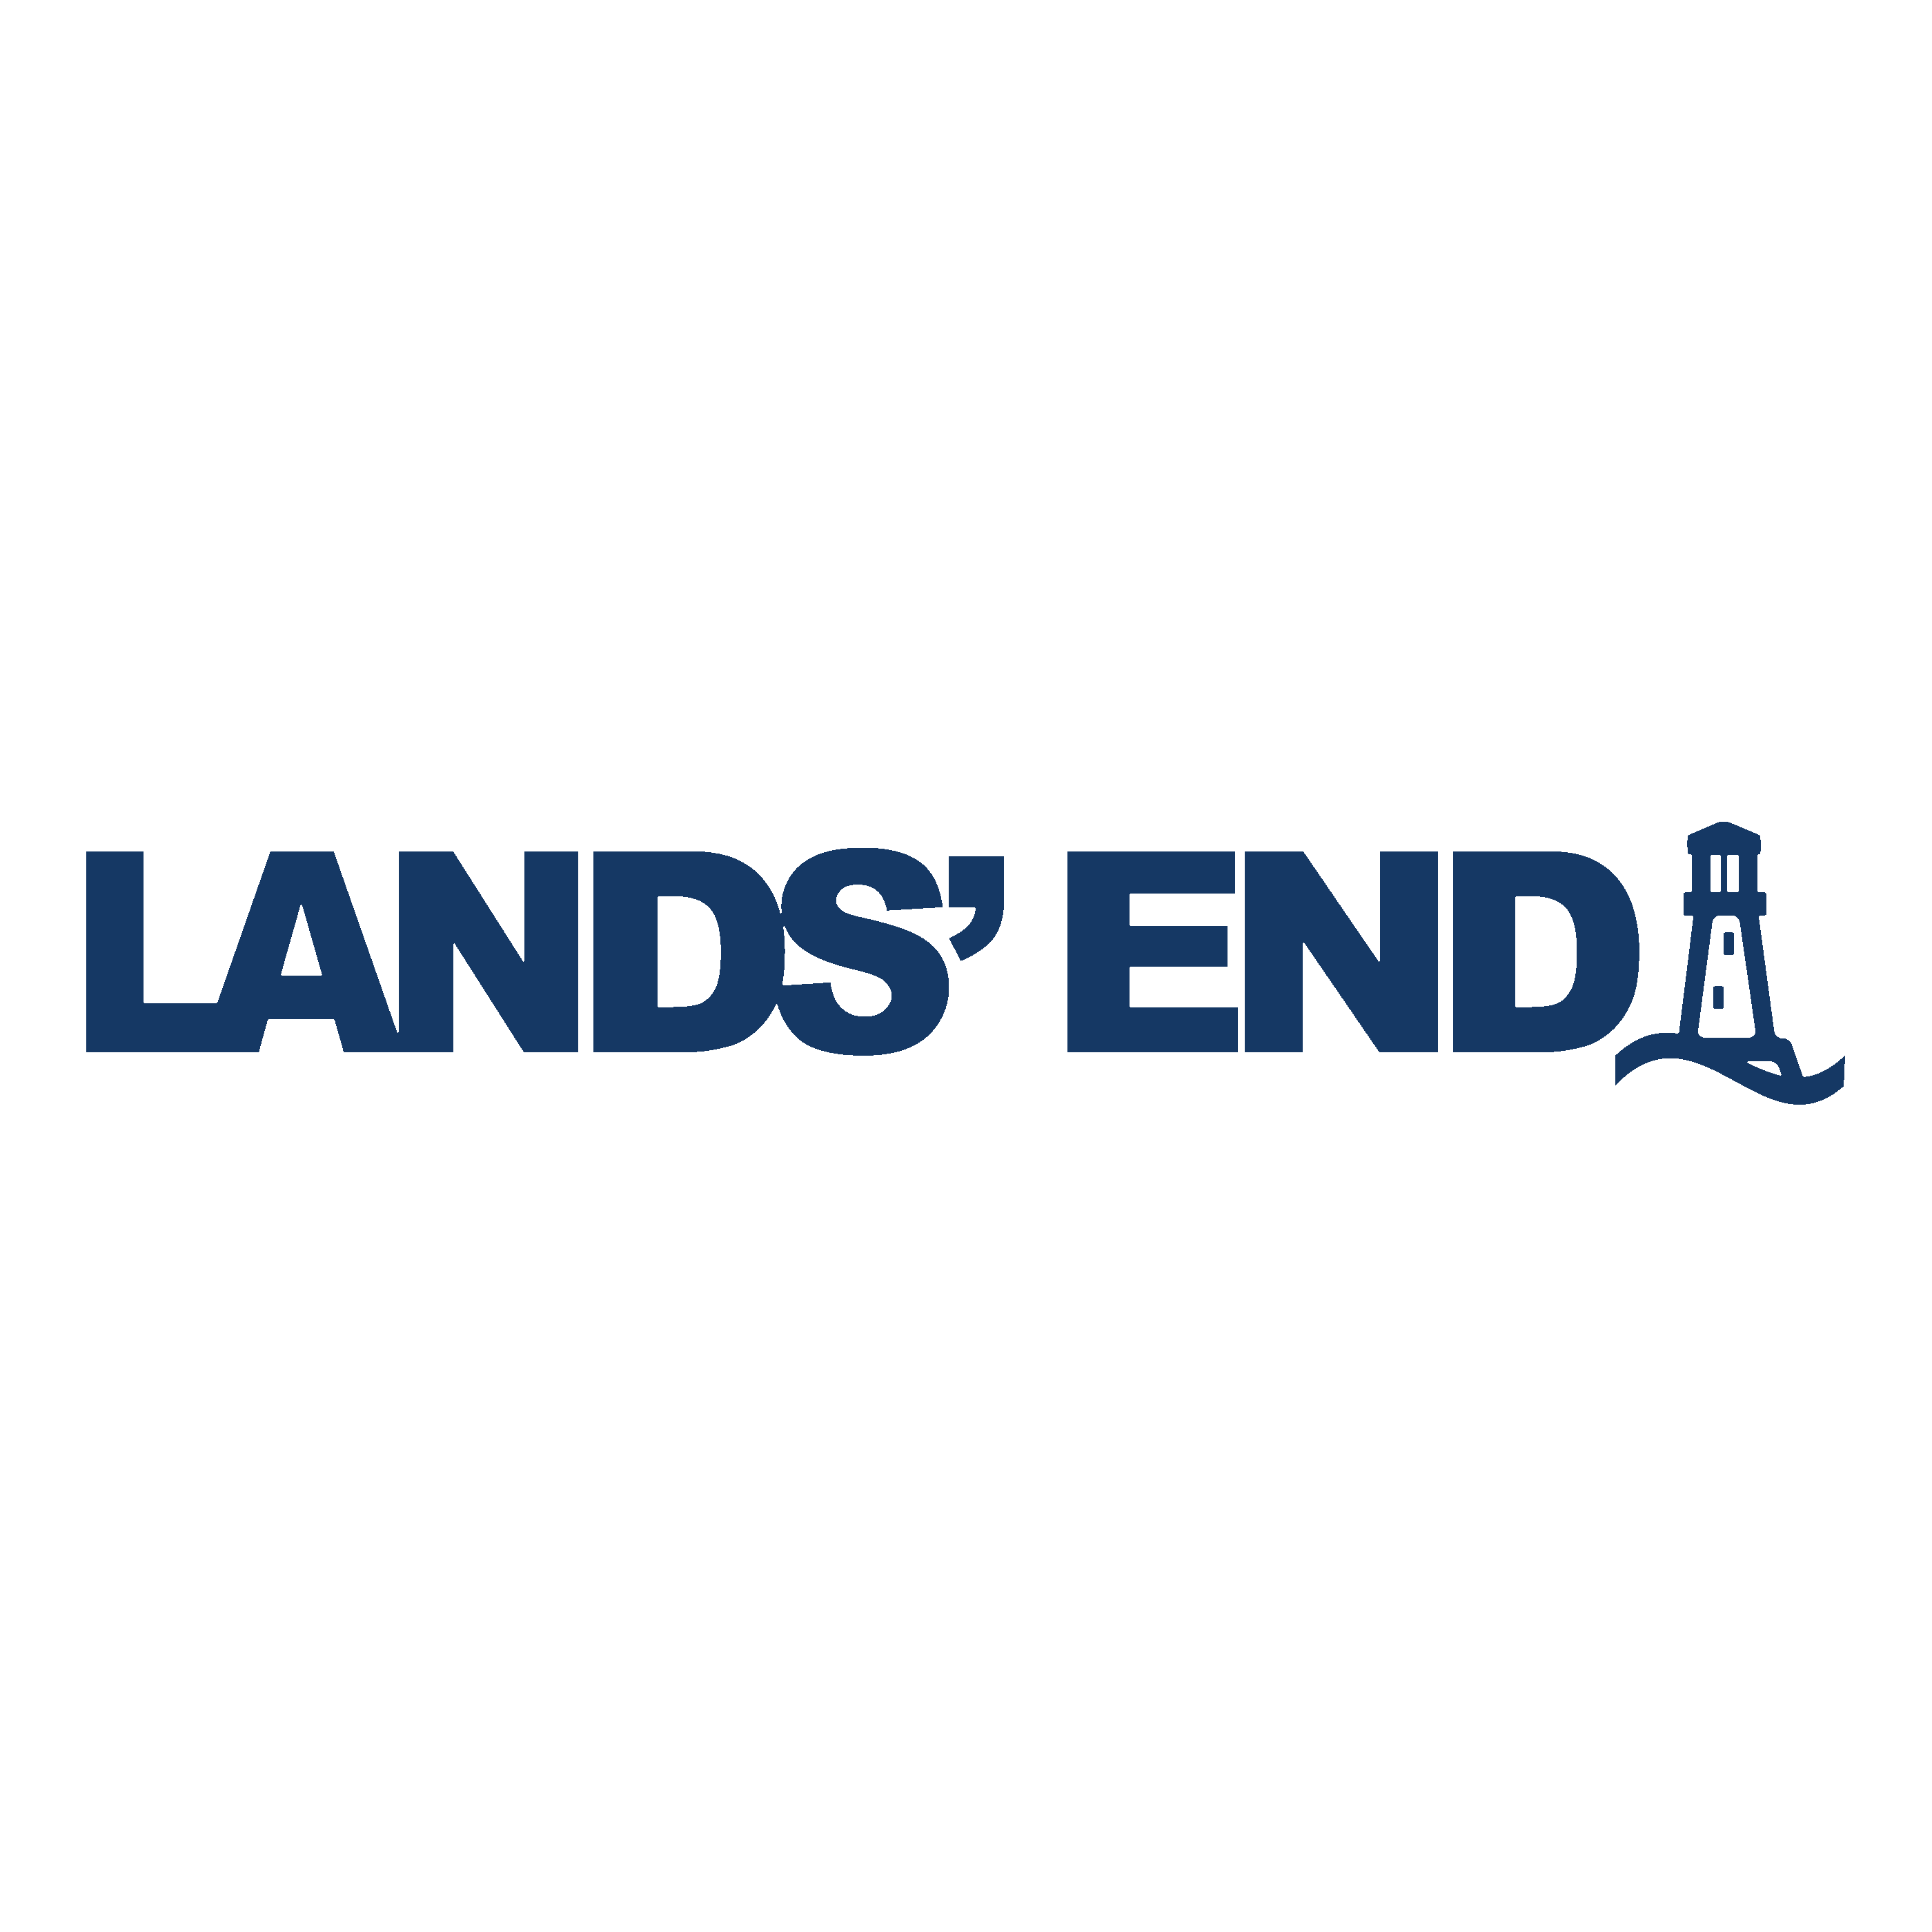 Receive 50% off your Lands' End Purchase When you Sign Up for Our Mailing List